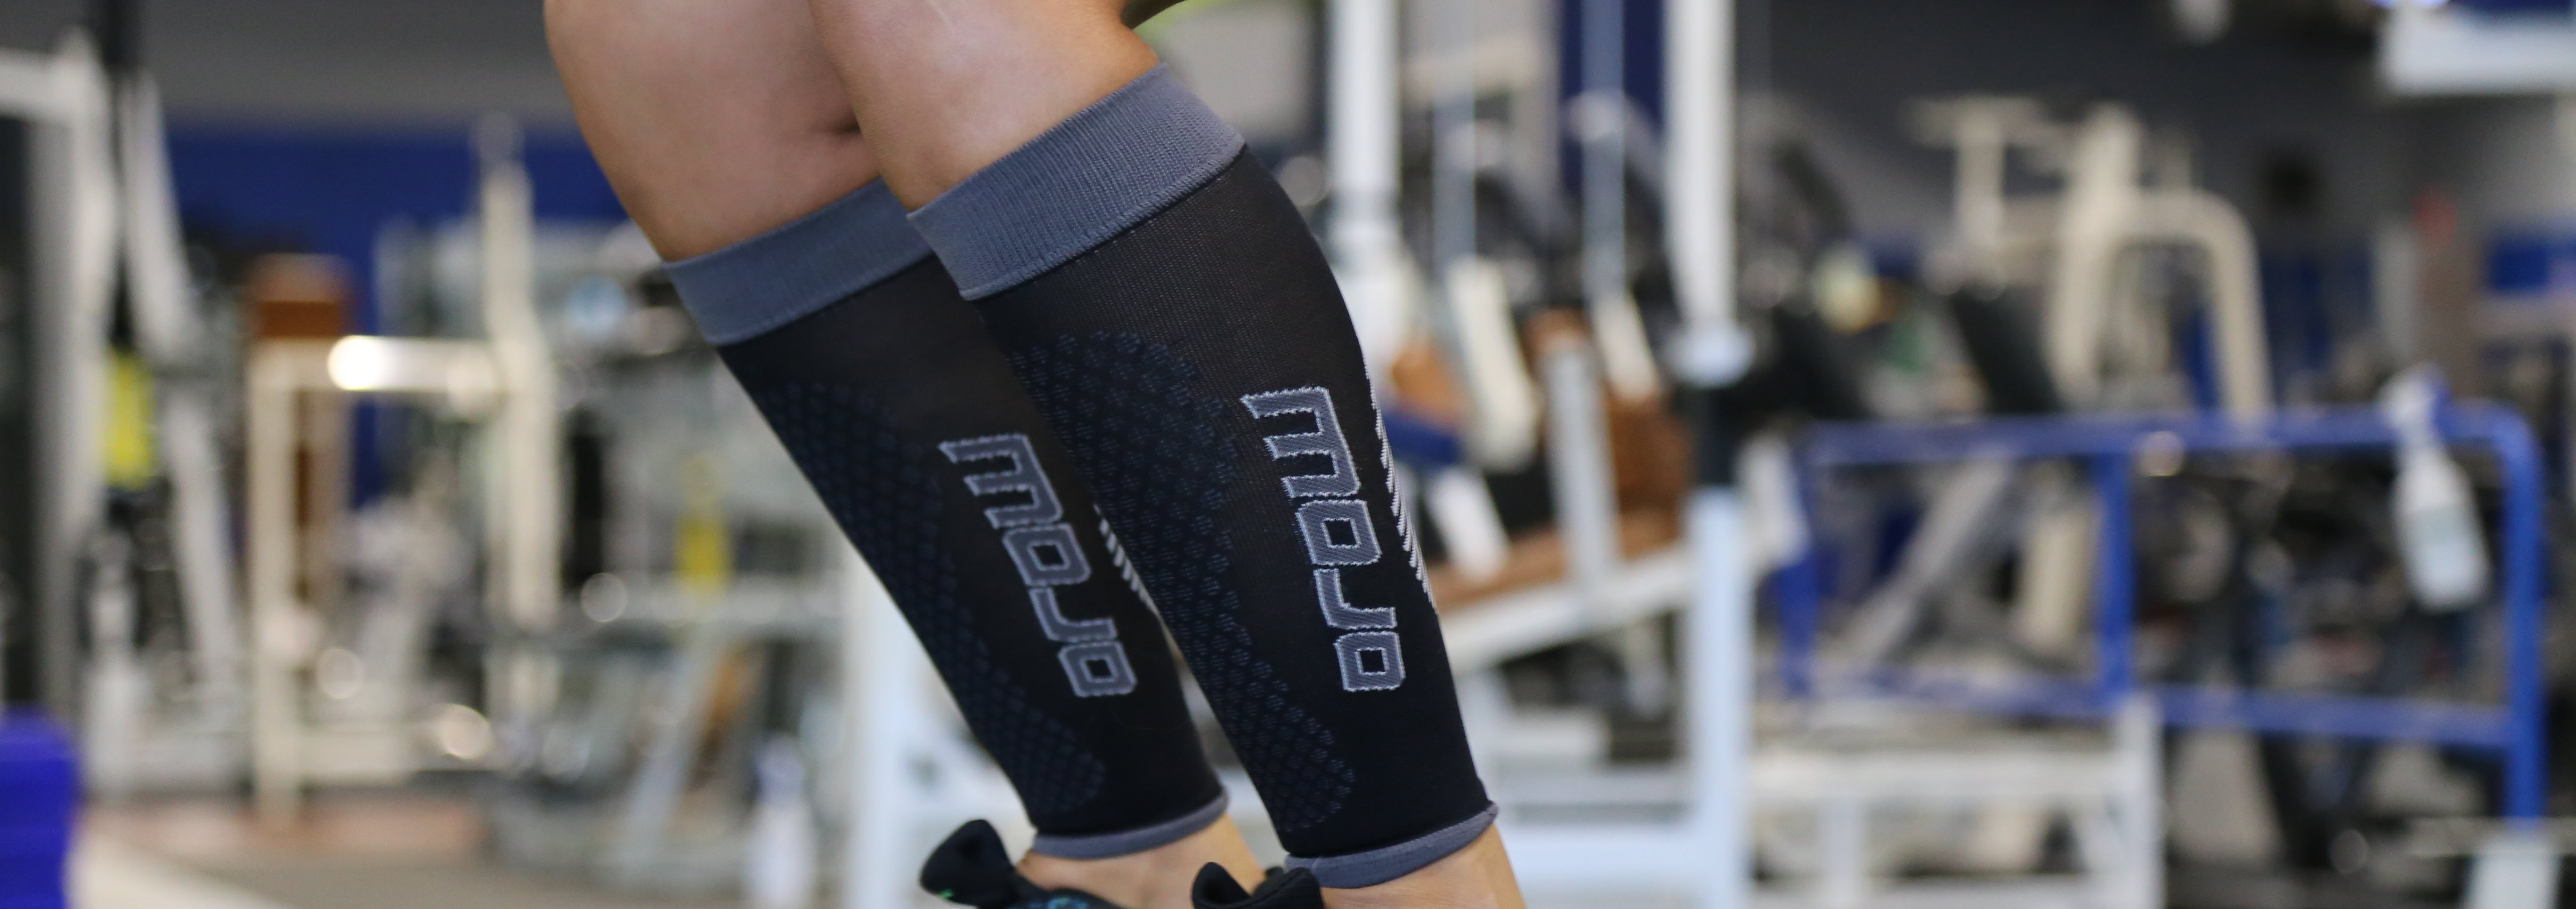 Add a compression sleeve to your routine